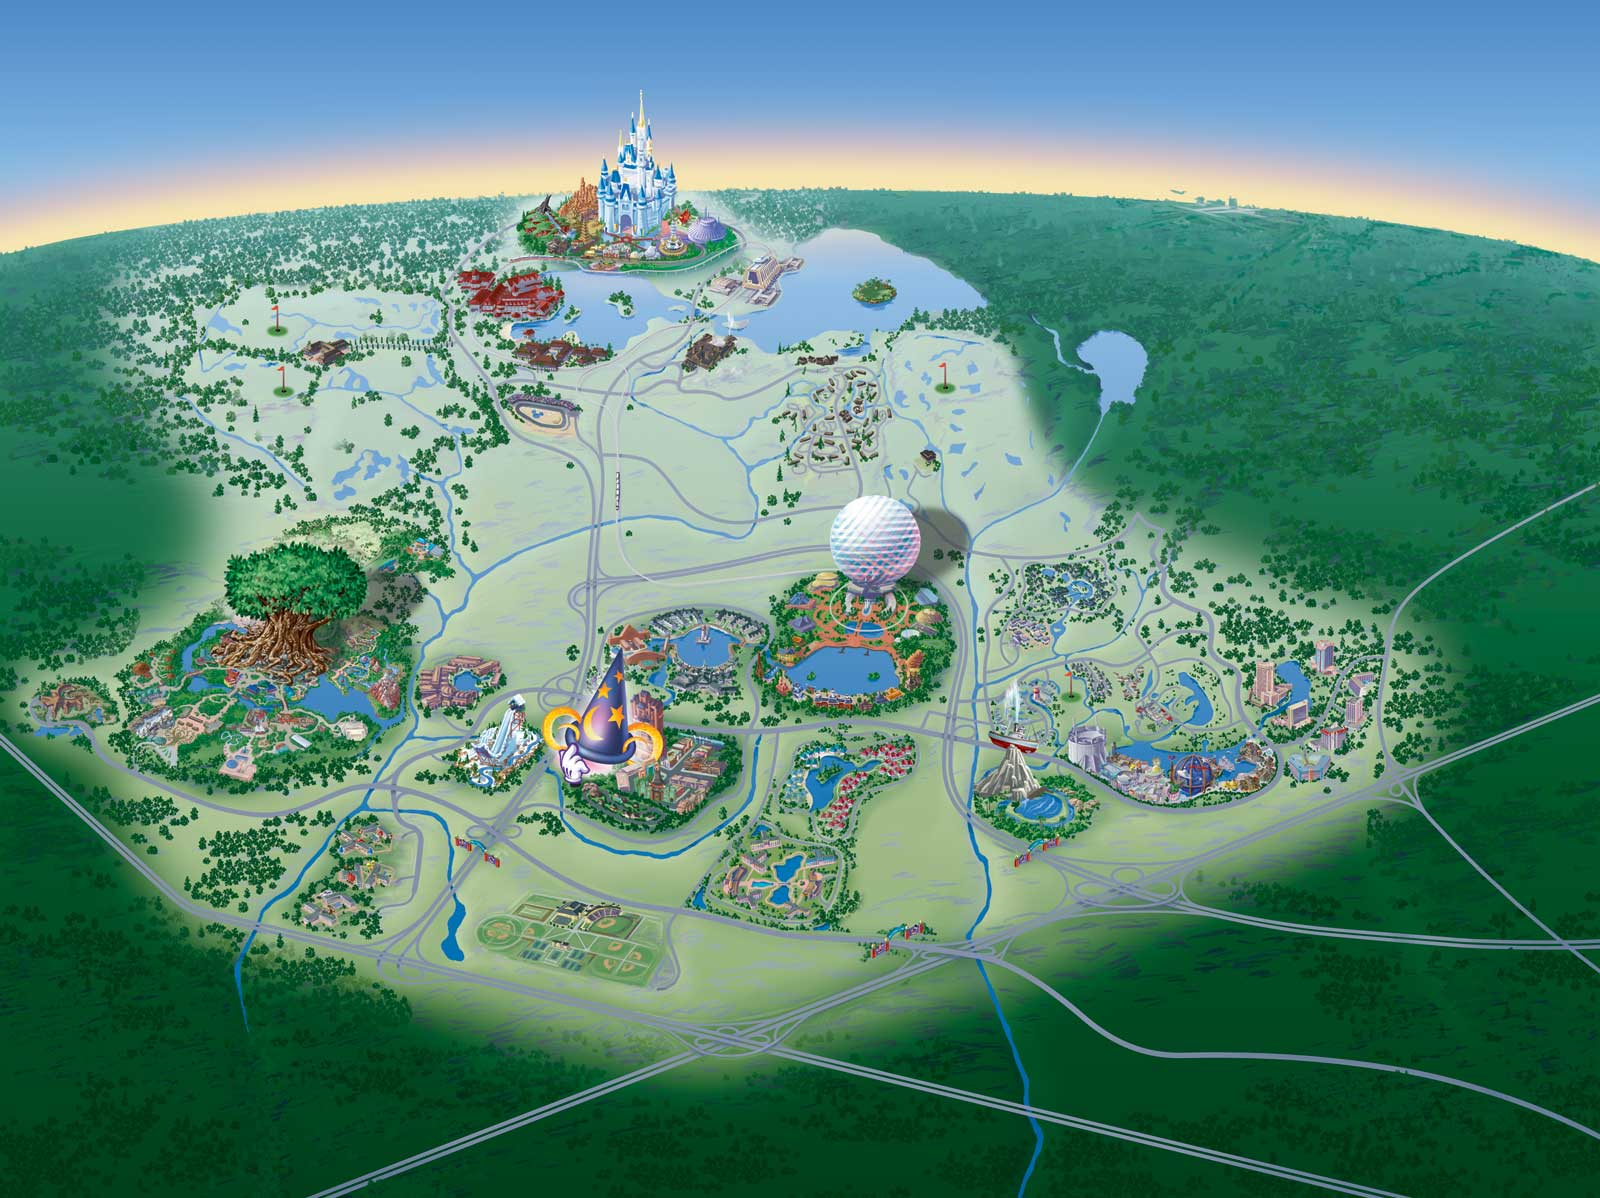 Image walt disney world mapg disney wiki fandom powered by walt disney world mapg gumiabroncs Choice Image